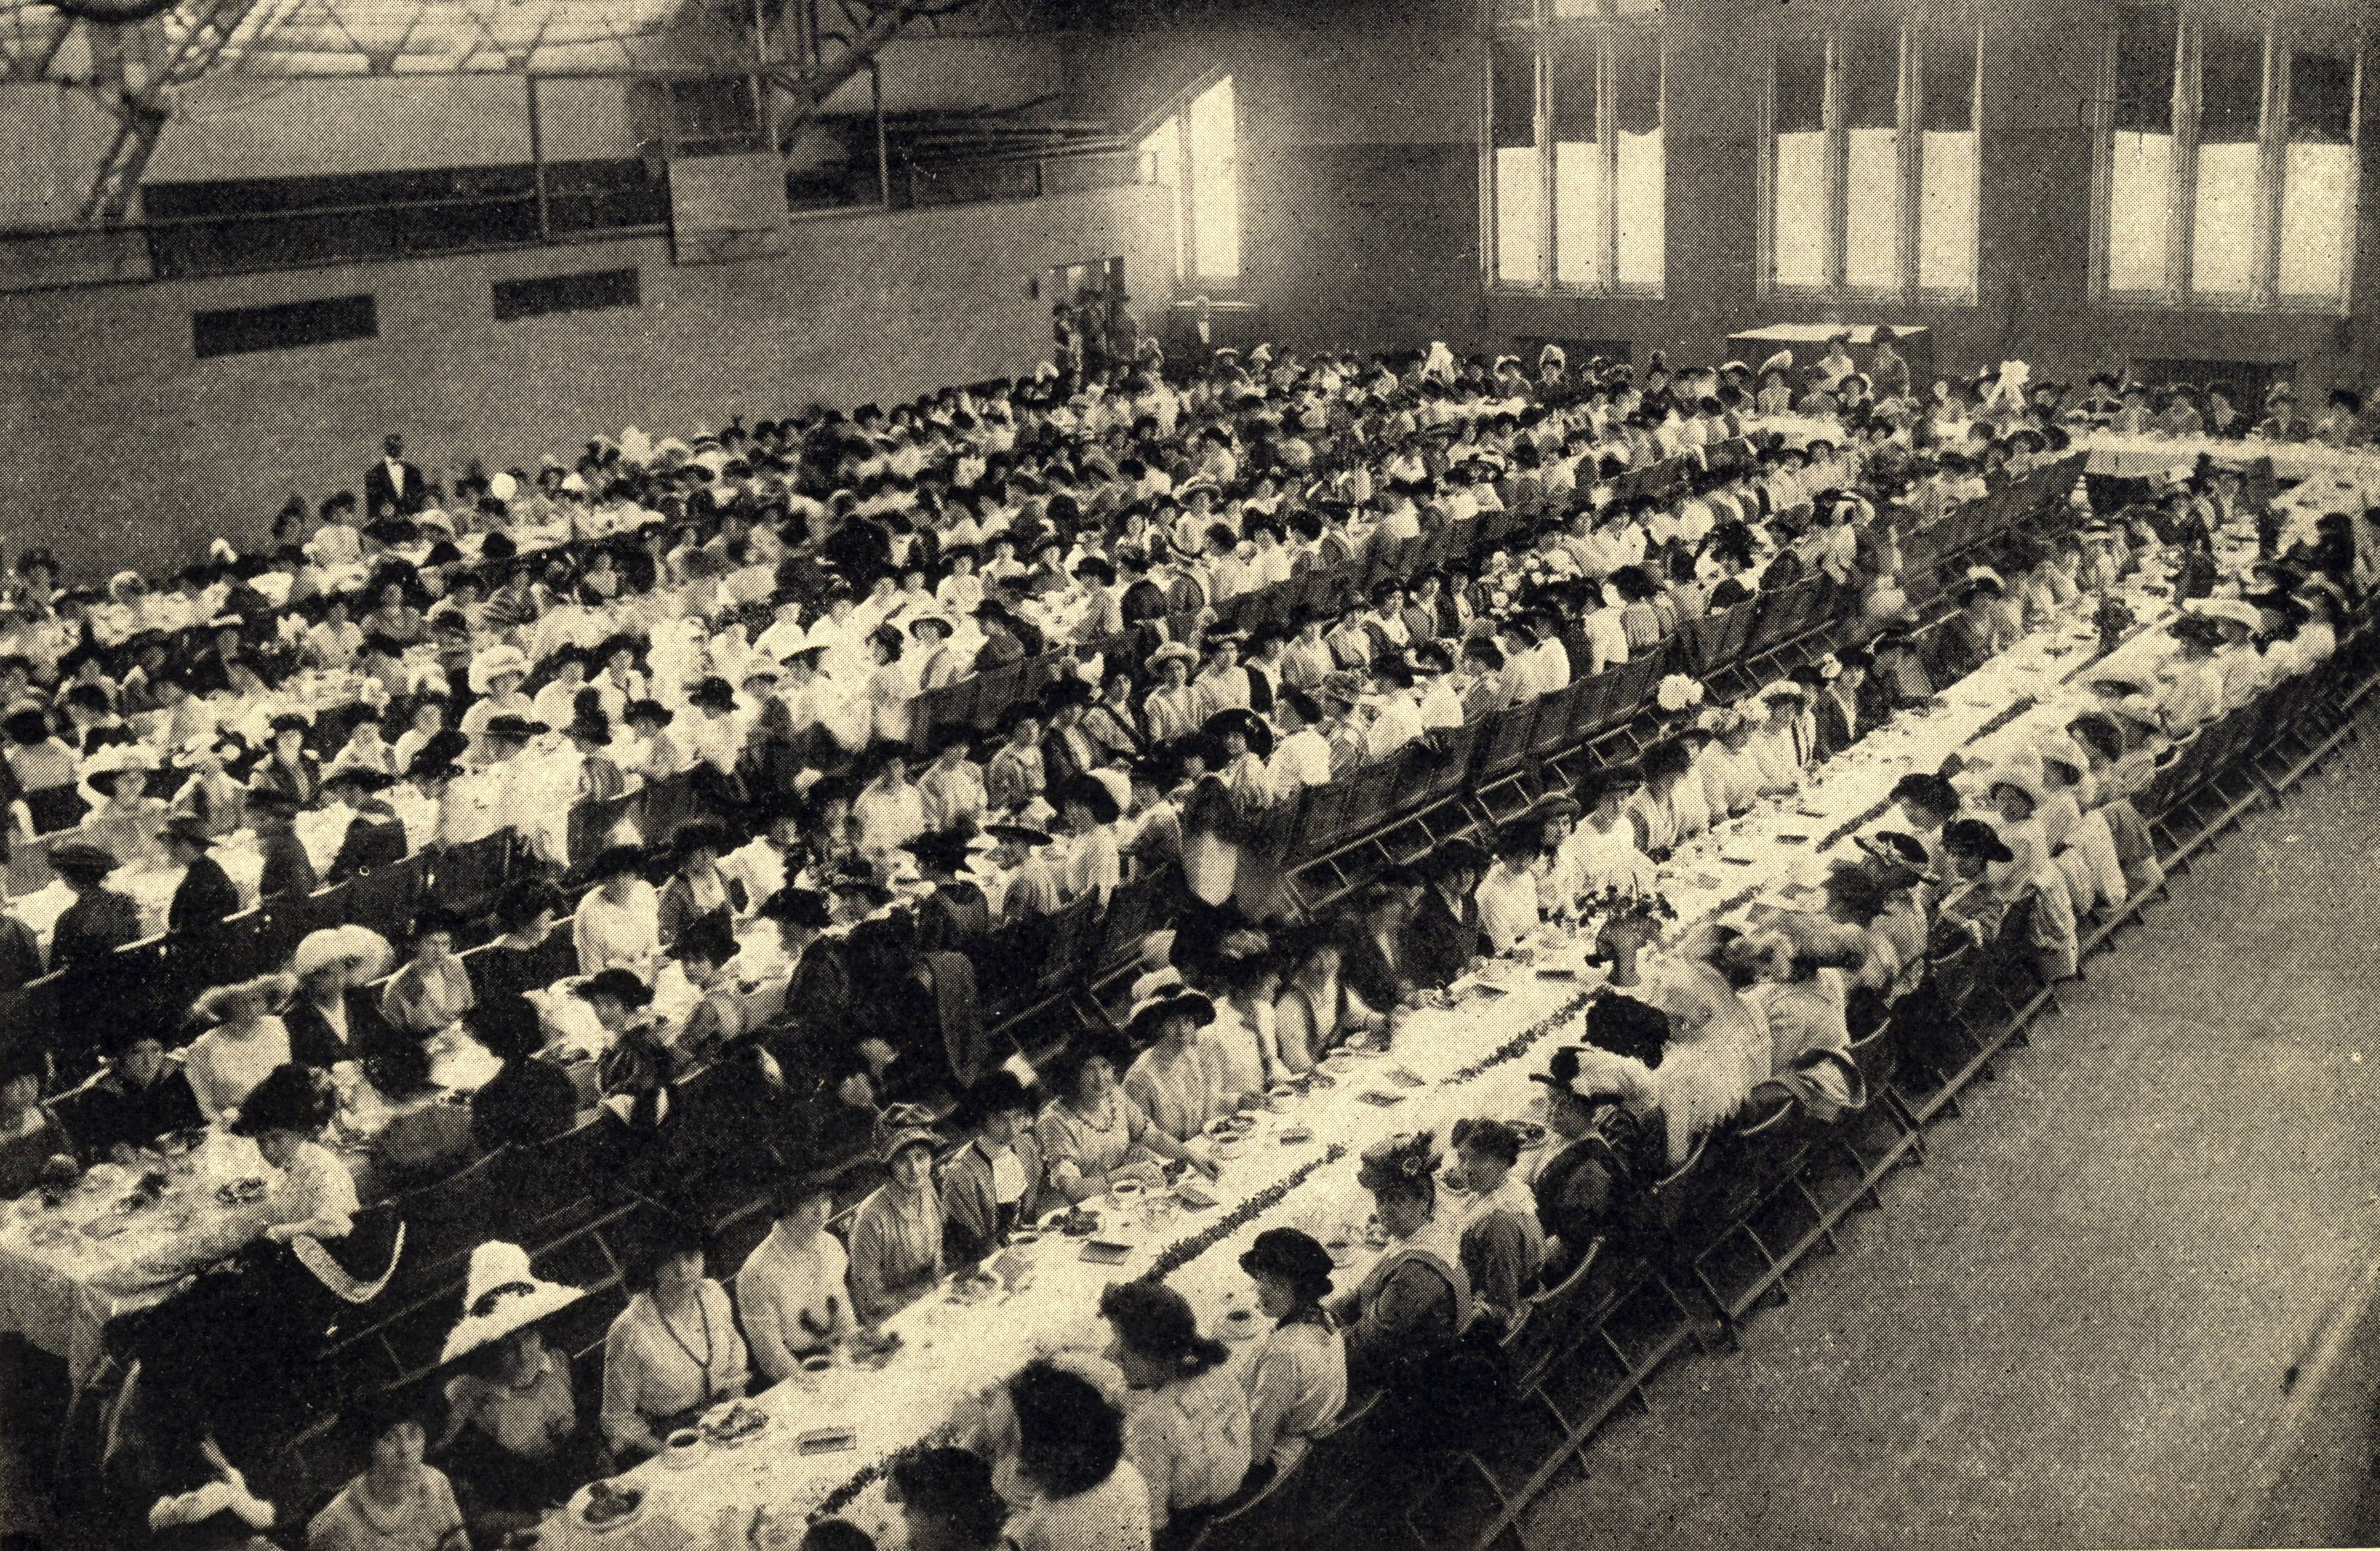 The Panhellenic Luncheon at Northwestern University's Patten Gymnasium, October 1913.